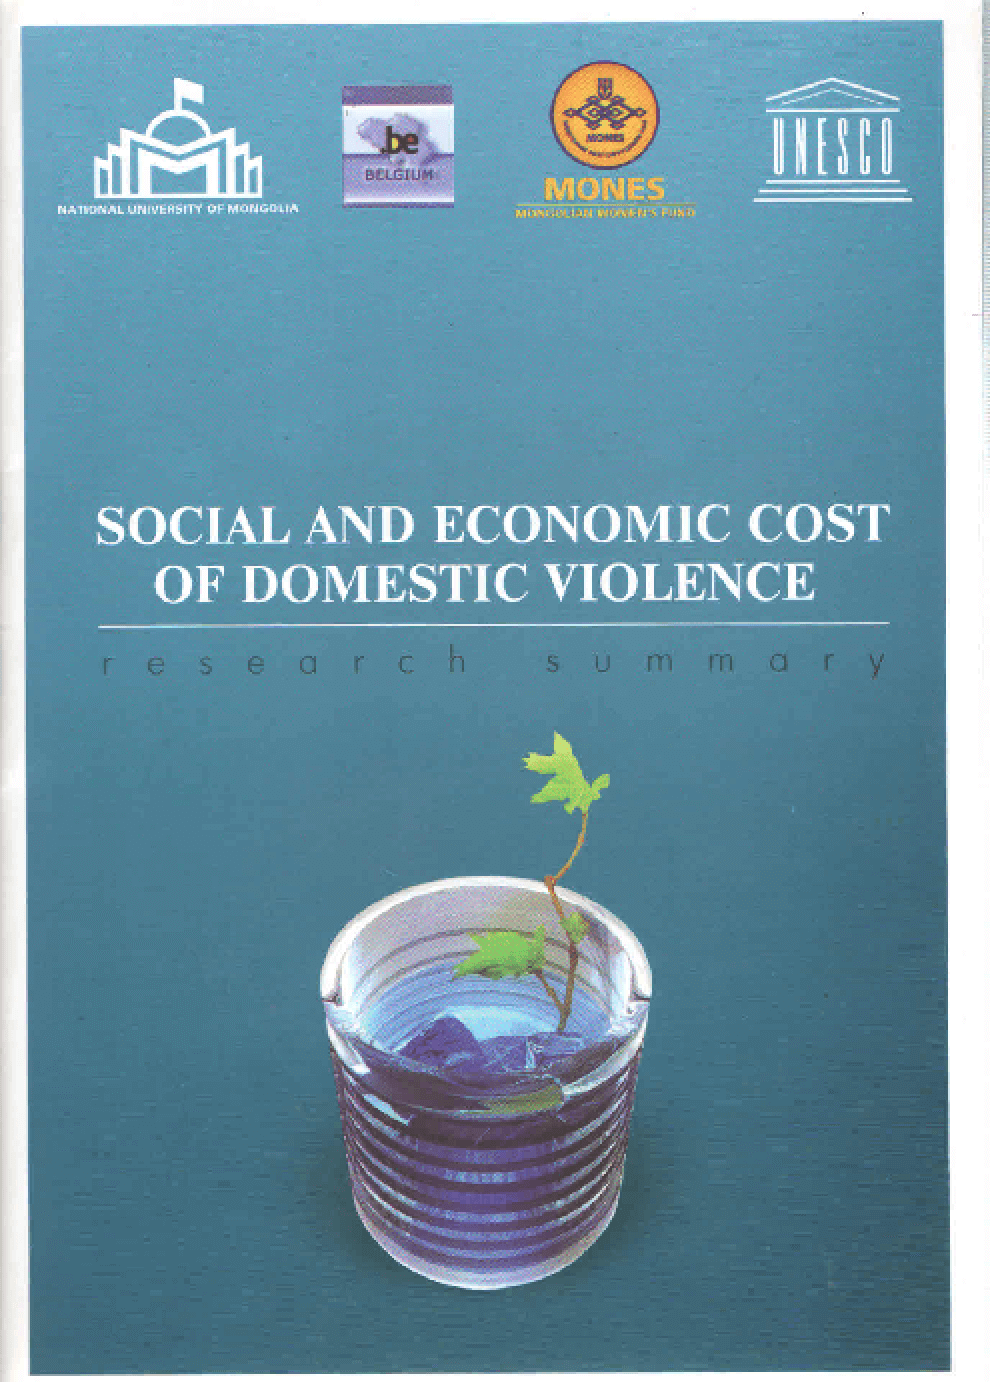 Social and Economic Cost of Domestic Violence-Research Summary